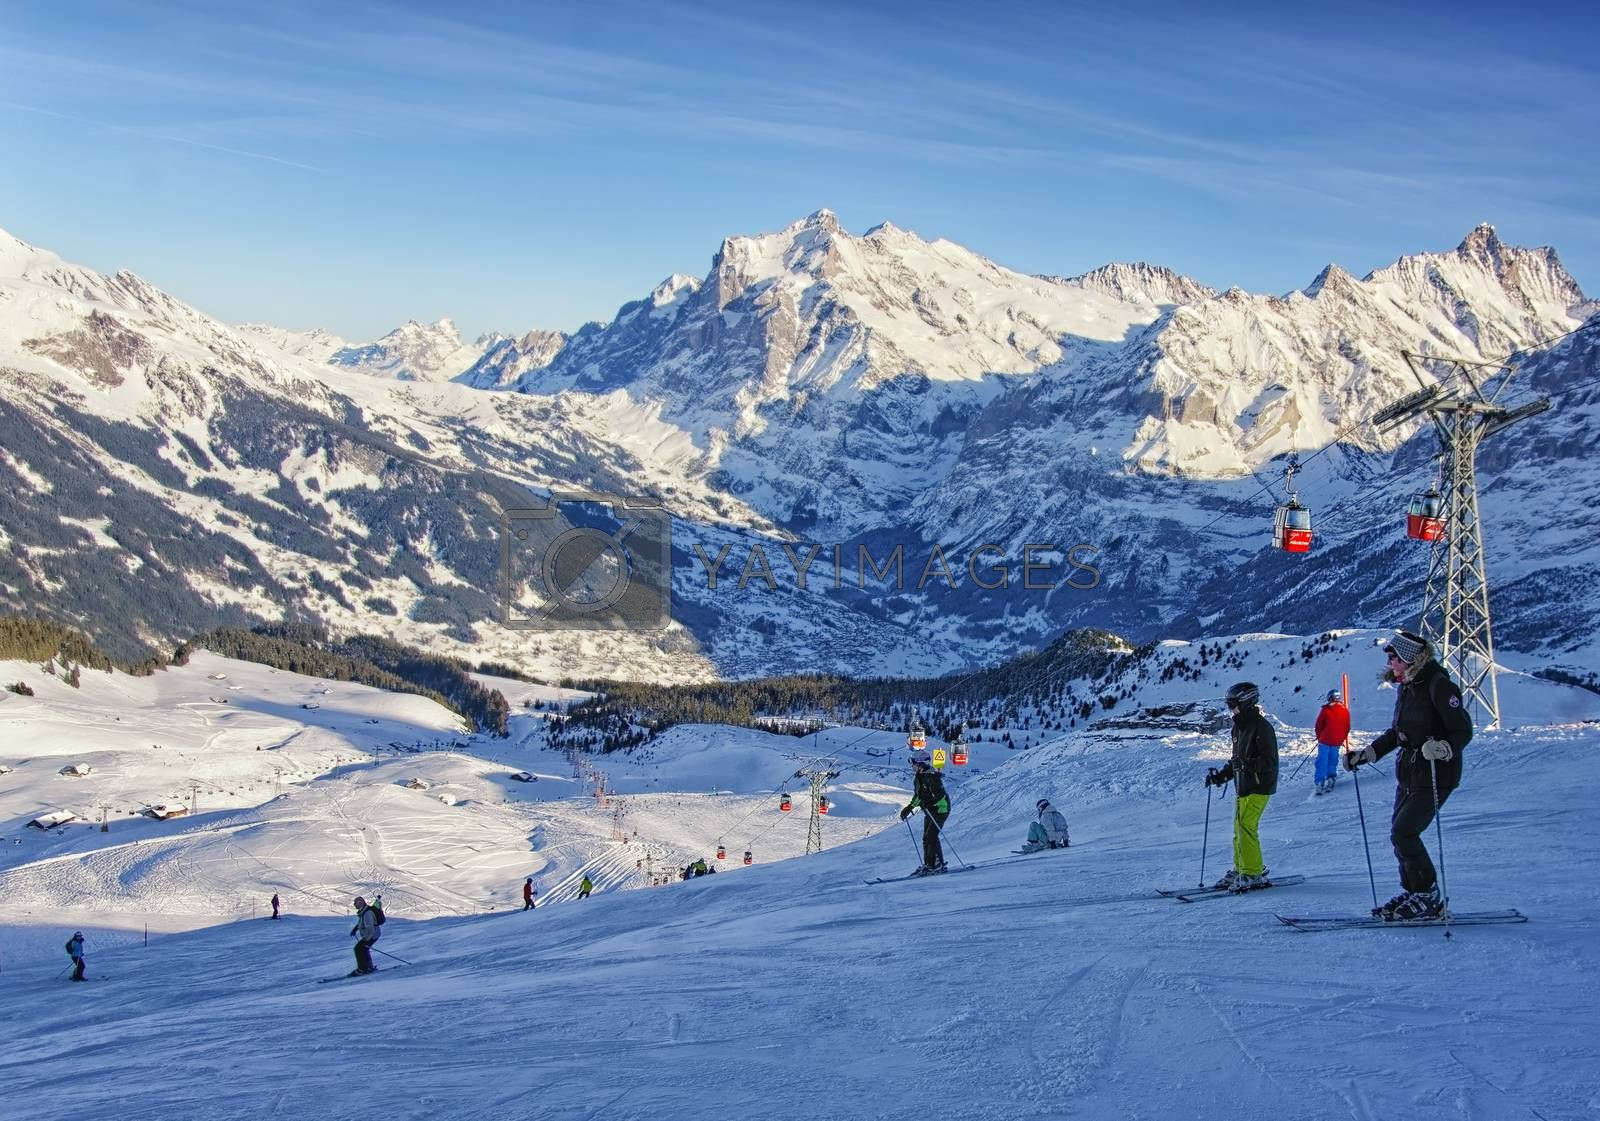 Royalty free image of Men and women on ski  and snowboards near cable railway on winte by erix200511@mail.ru